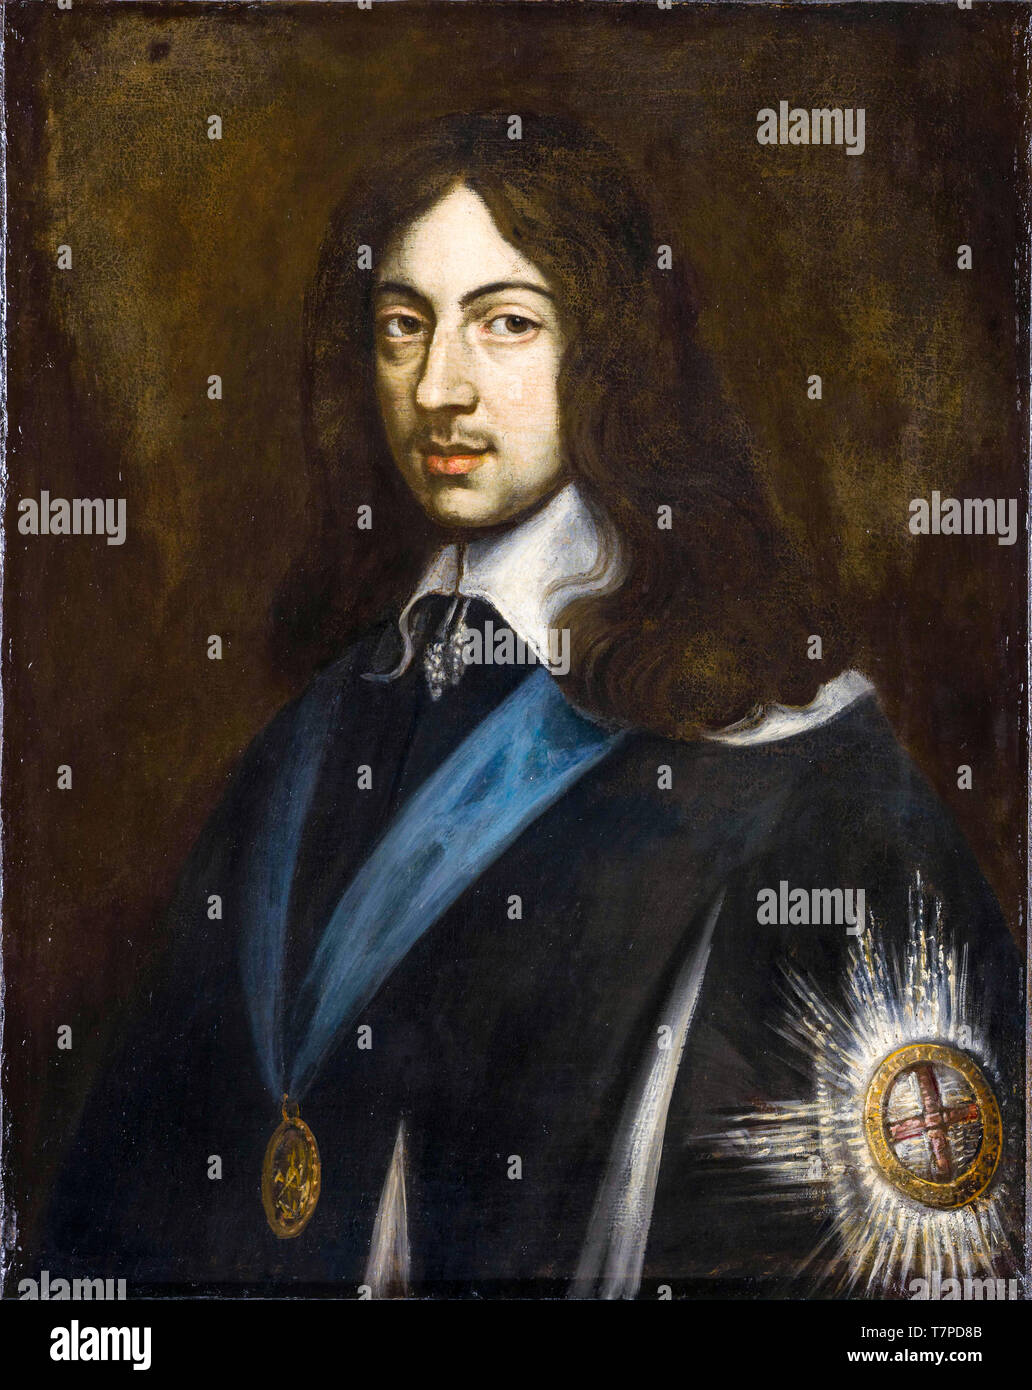 Portrait of King Charles II of England, painting after Jan van den Hoecke, 17th Century - Stock Image